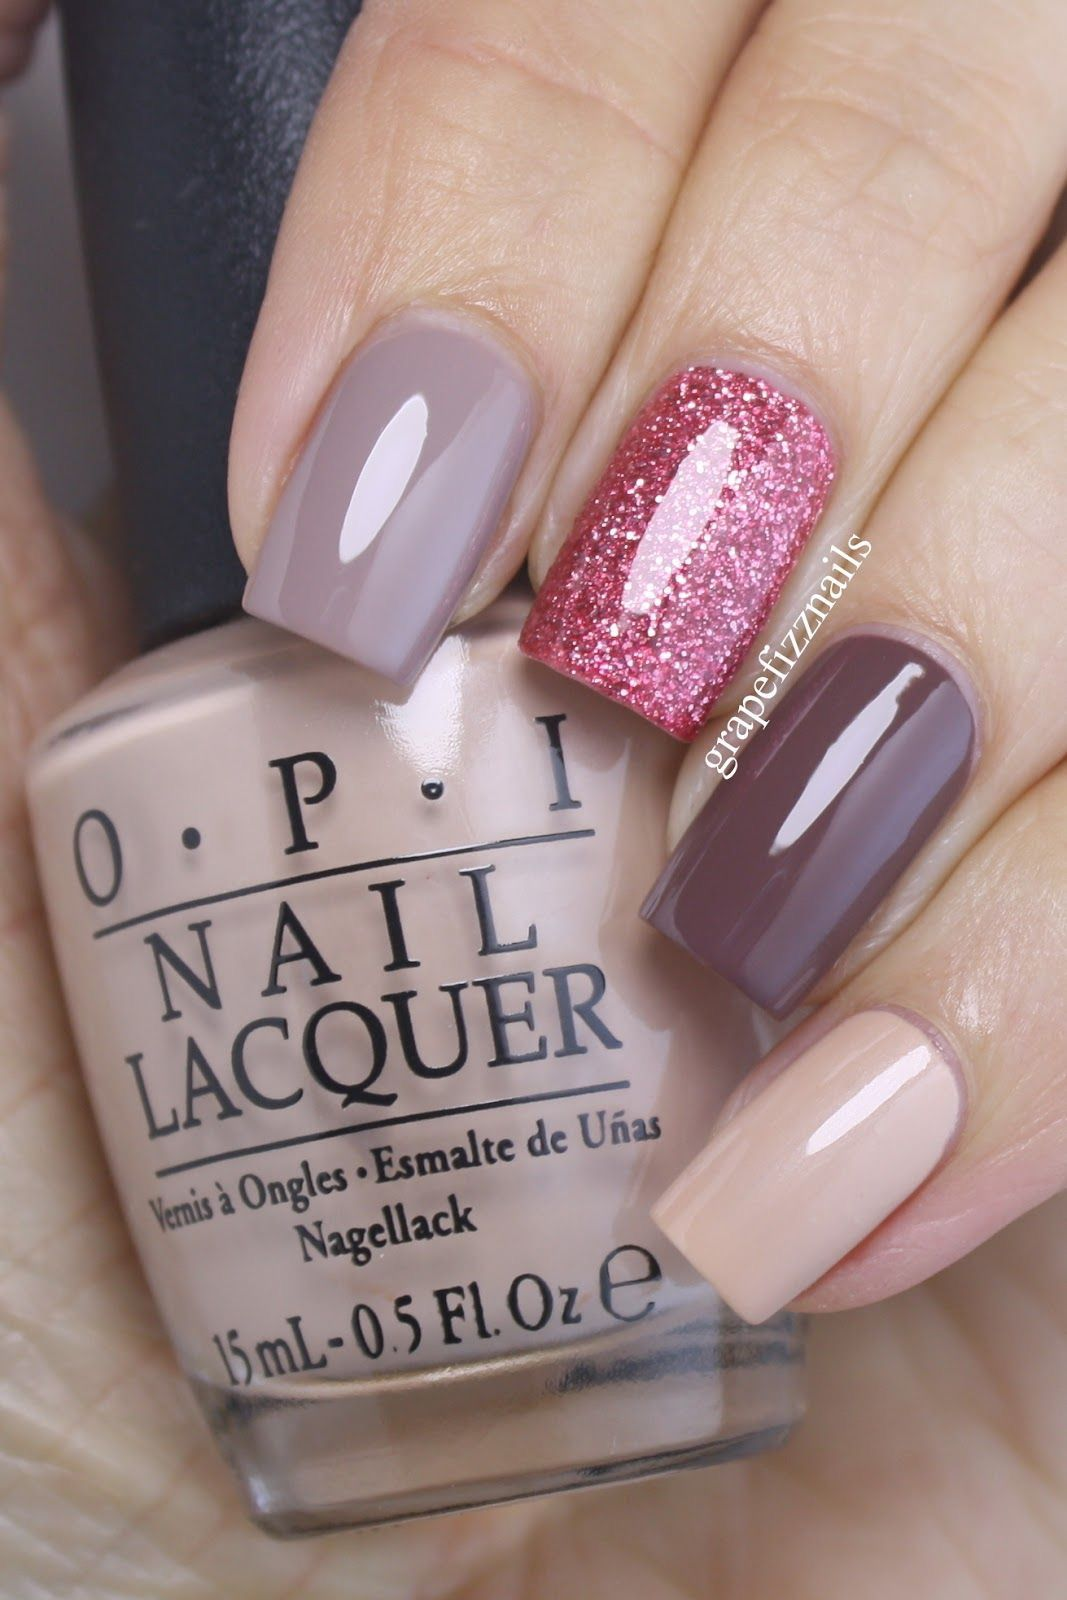 Pin by Kimberly Hannan on Nails, hair, and clothes | Pinterest ...